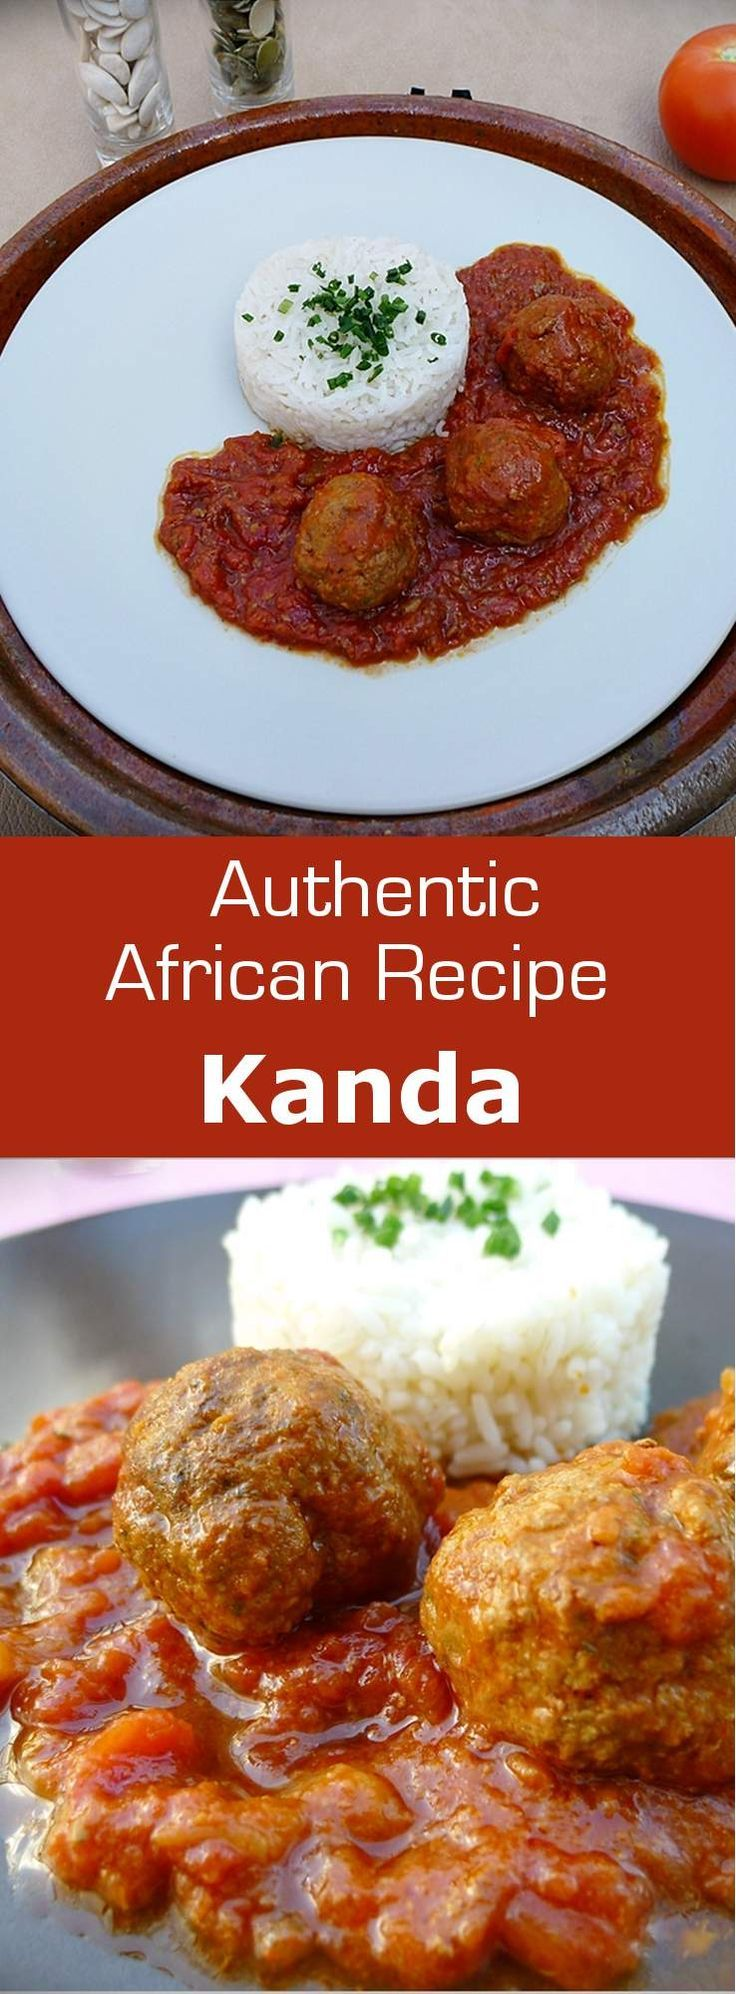 67 best central african cuisine images on pinterest for African cuisine near me